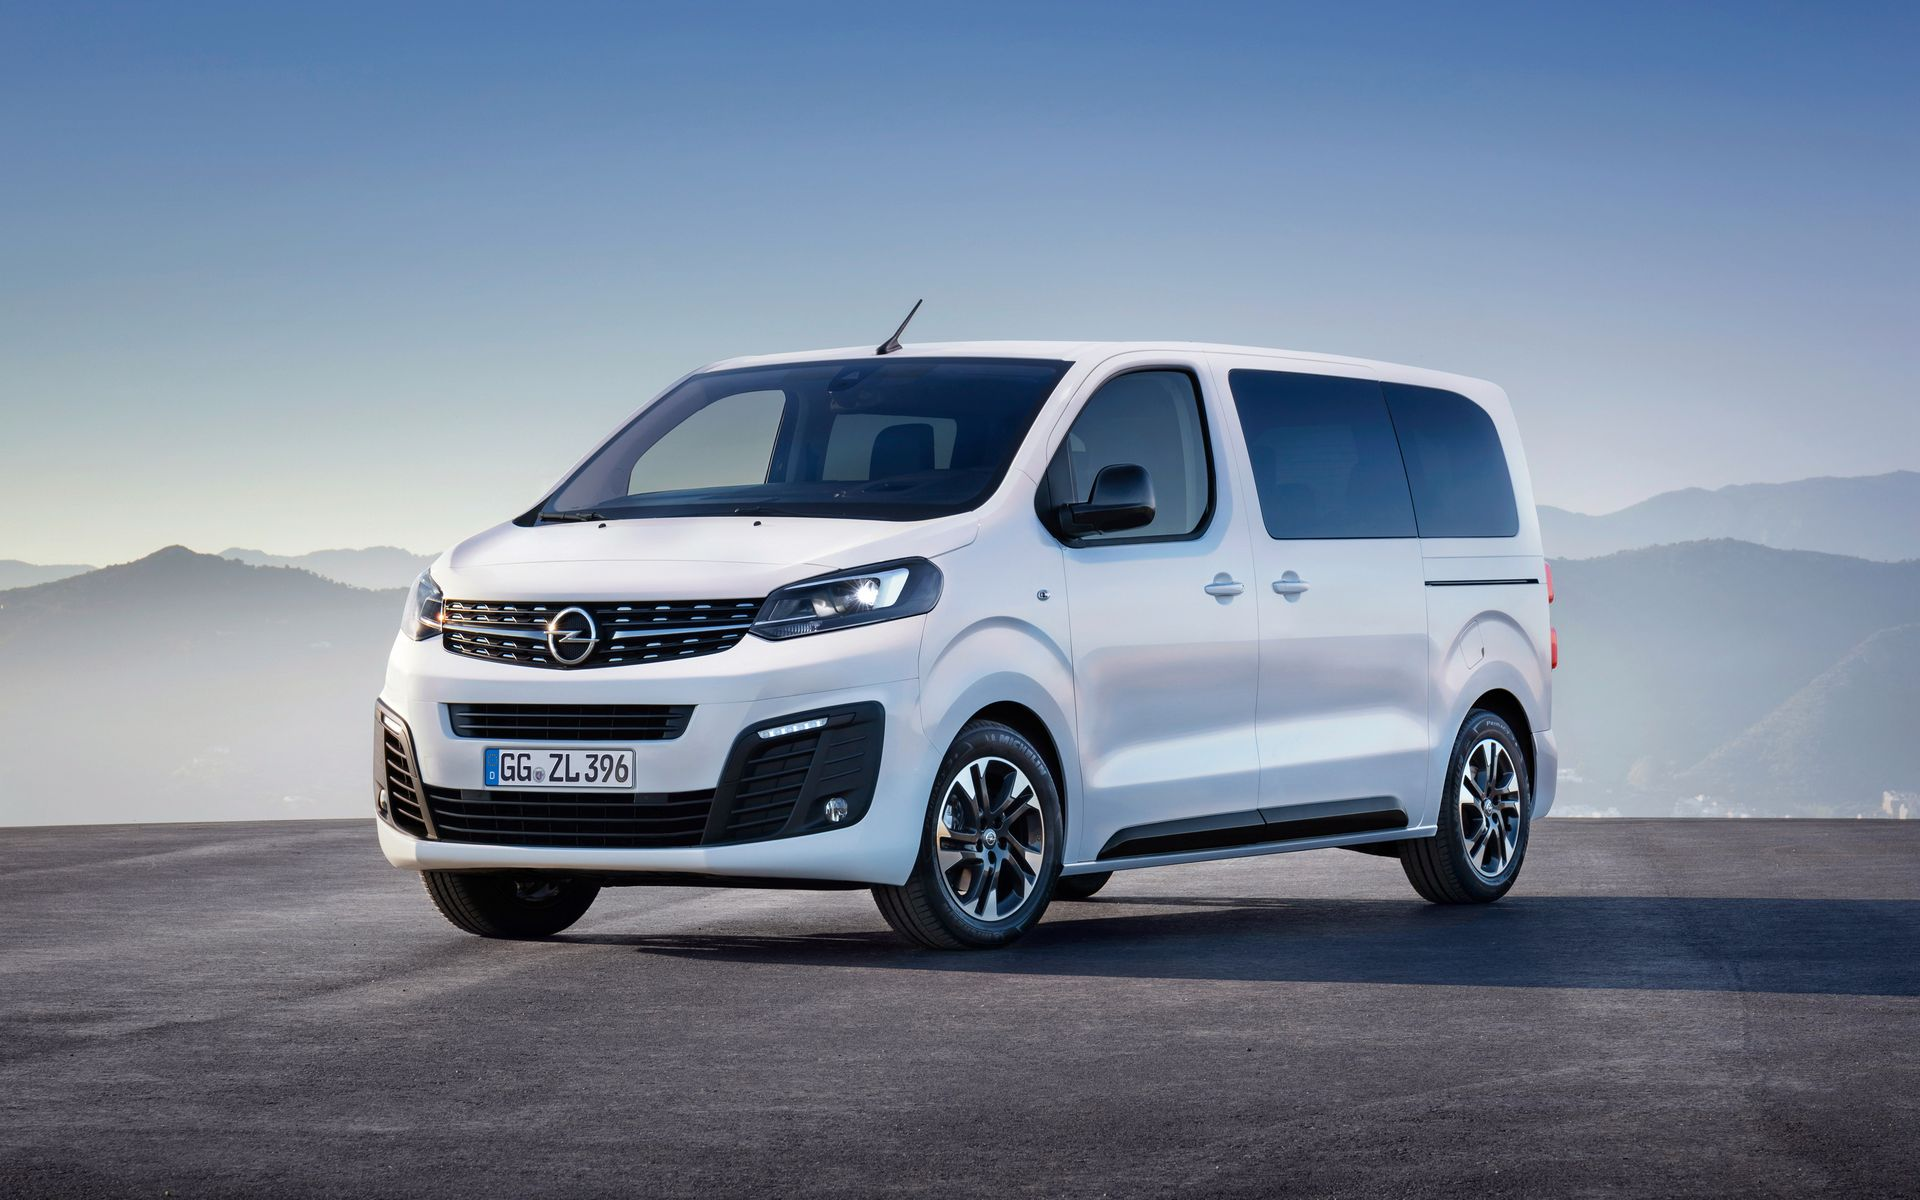 2019 opel zafira life vauxhall vivaro life revealed ev. Black Bedroom Furniture Sets. Home Design Ideas